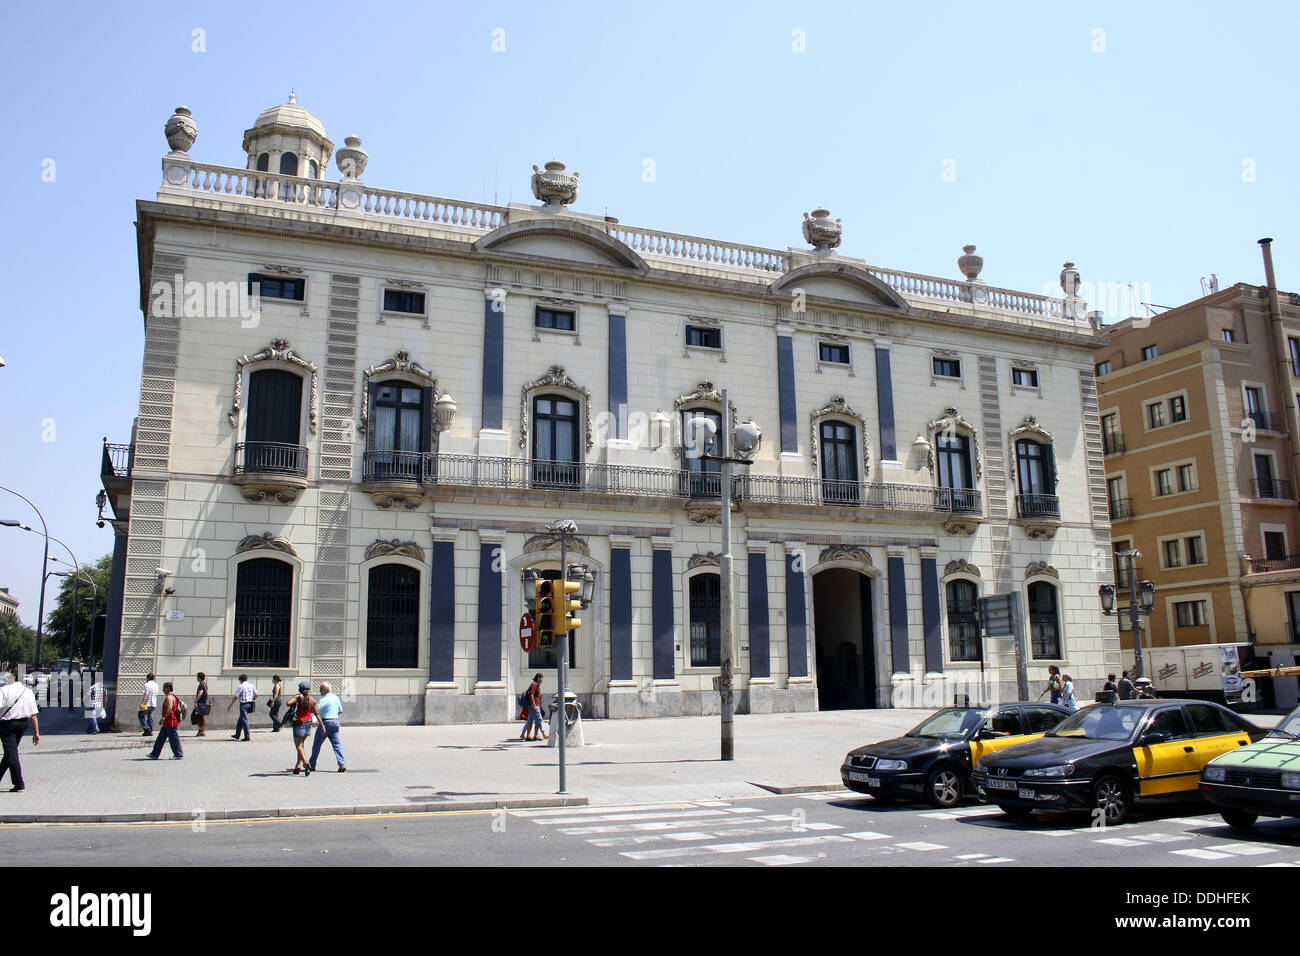 House Pla | Govern Civil Former Customs House Pla De Palau Barcelona Spain